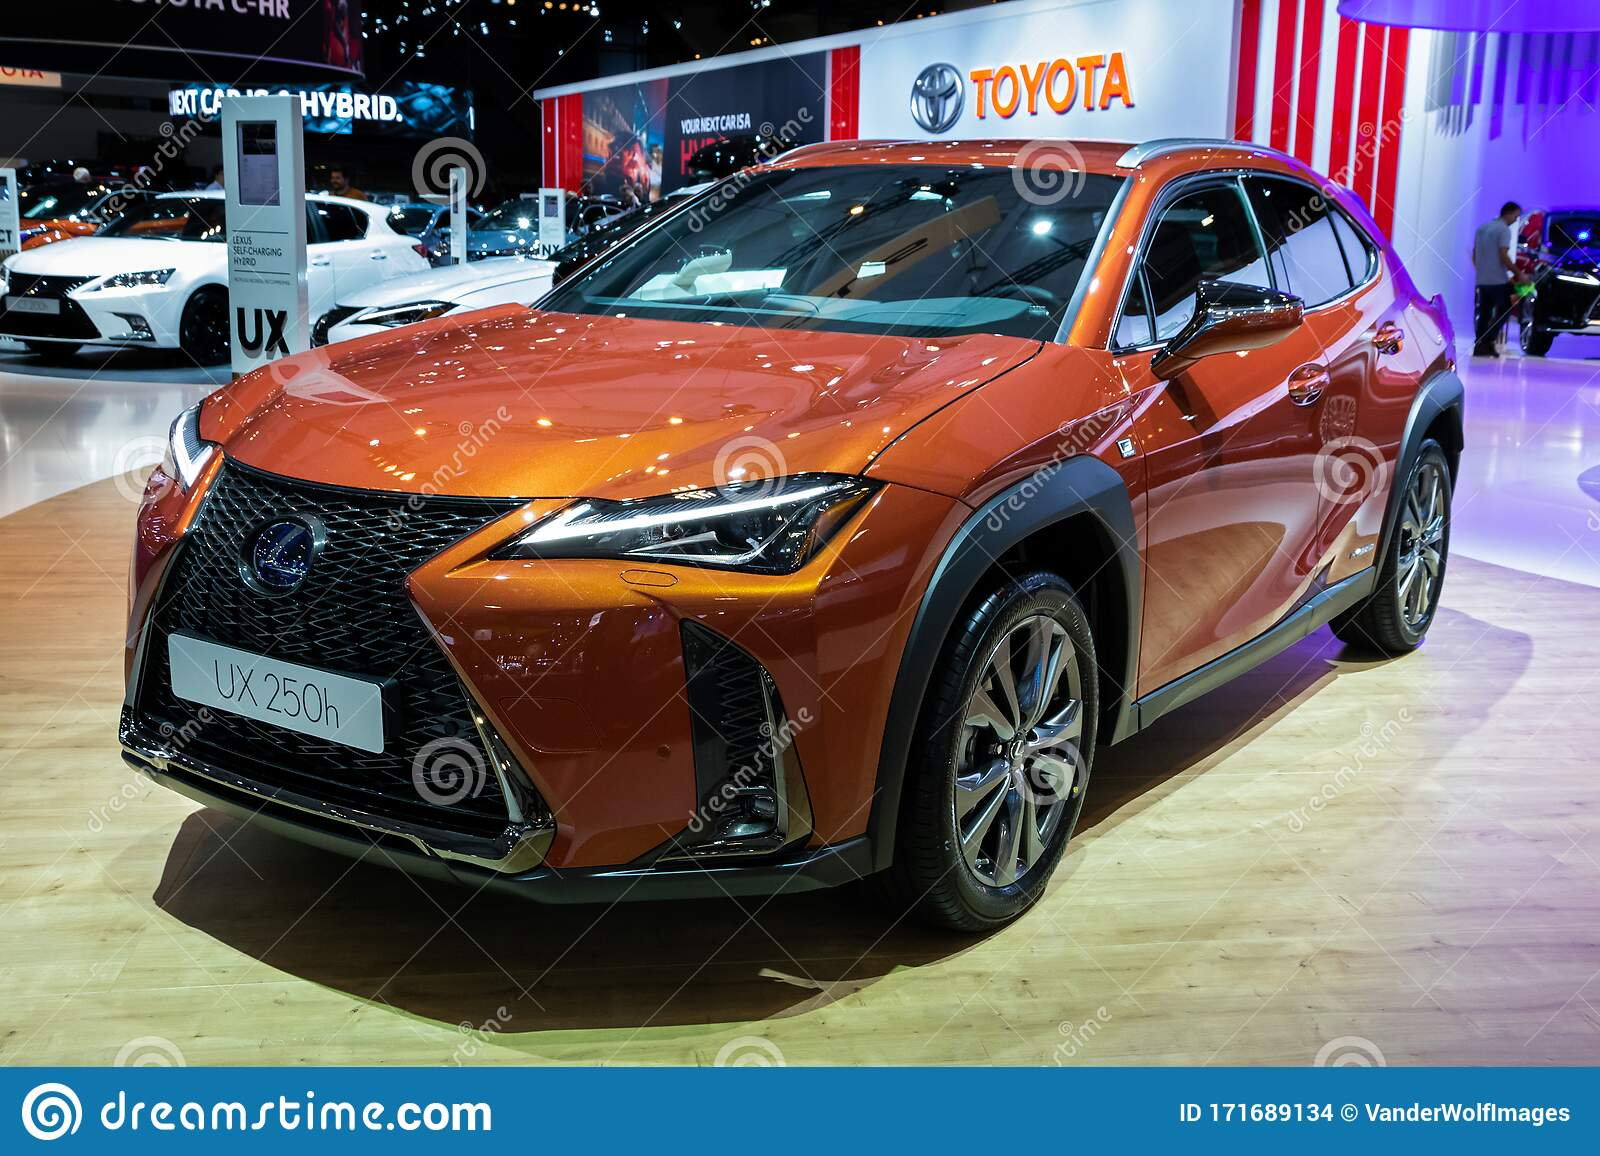 Brussels Jan 9 2020 Lexus Ux 250h Hybrid Compact Suv Car Model Showcased At The Brussels Autosalon 2020 Motor Show Editorial Stock Image Image Of Brussels Hybrid 171689134